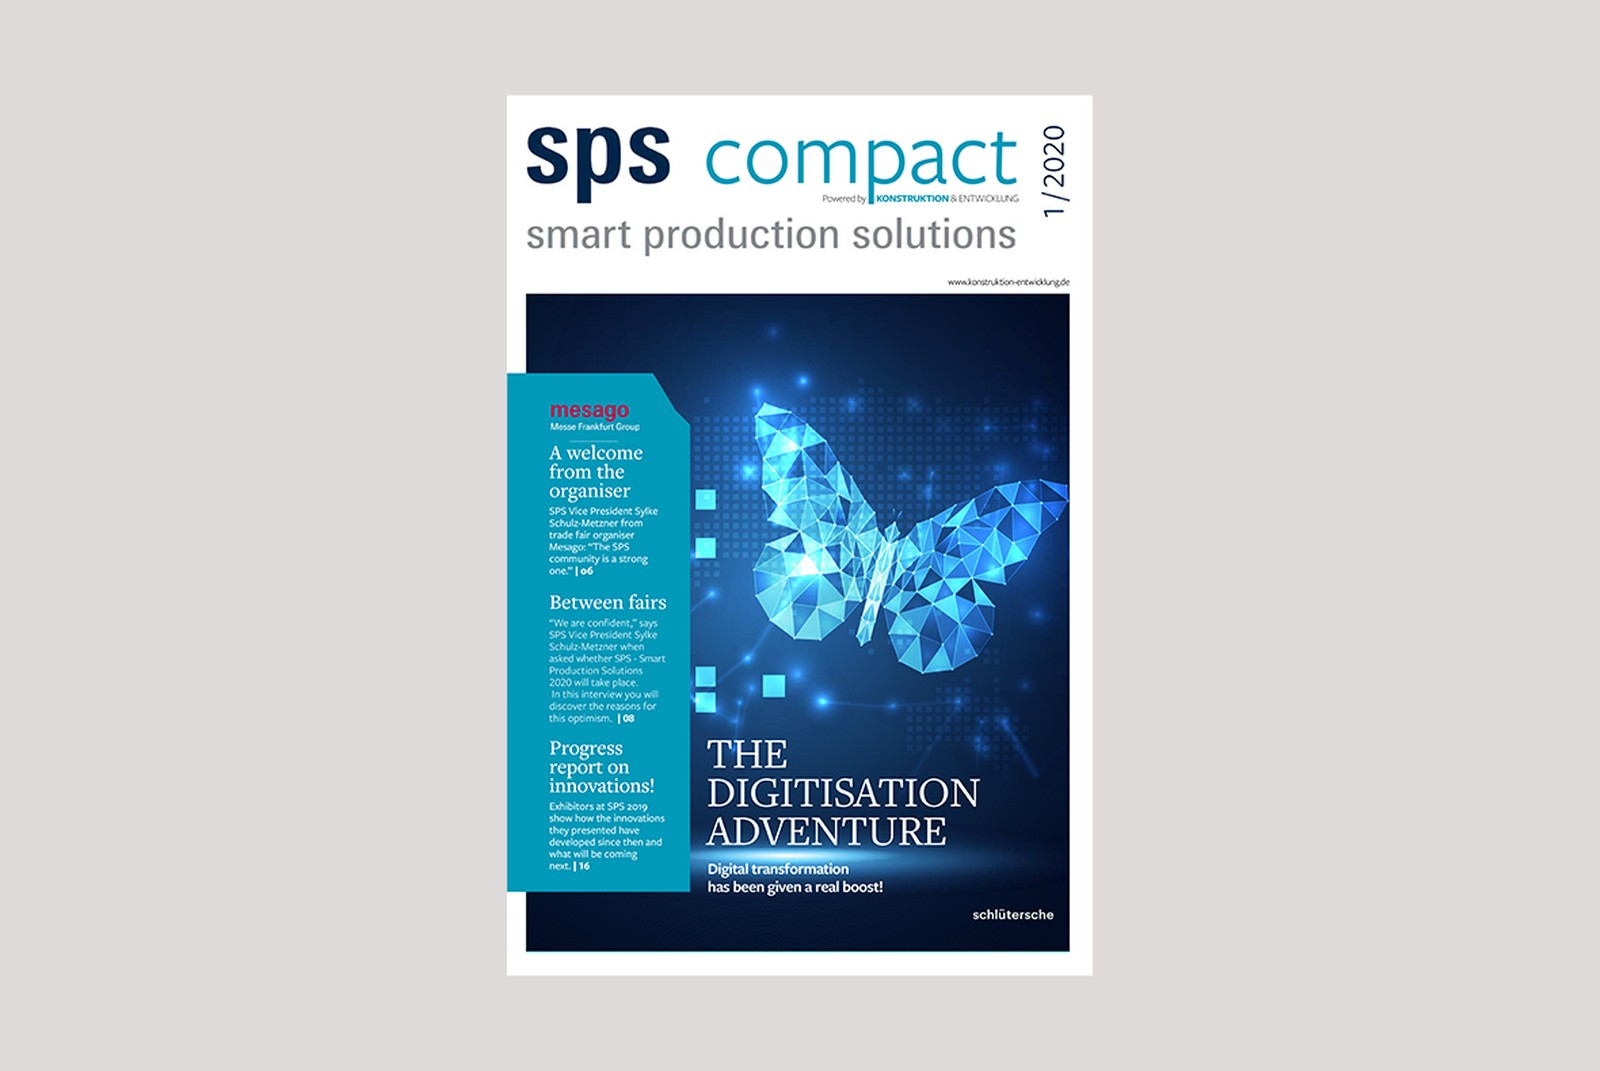 Review: In the first edition of SPS compact 2020, exhibitors show how the technology presented has developed and what comes next.